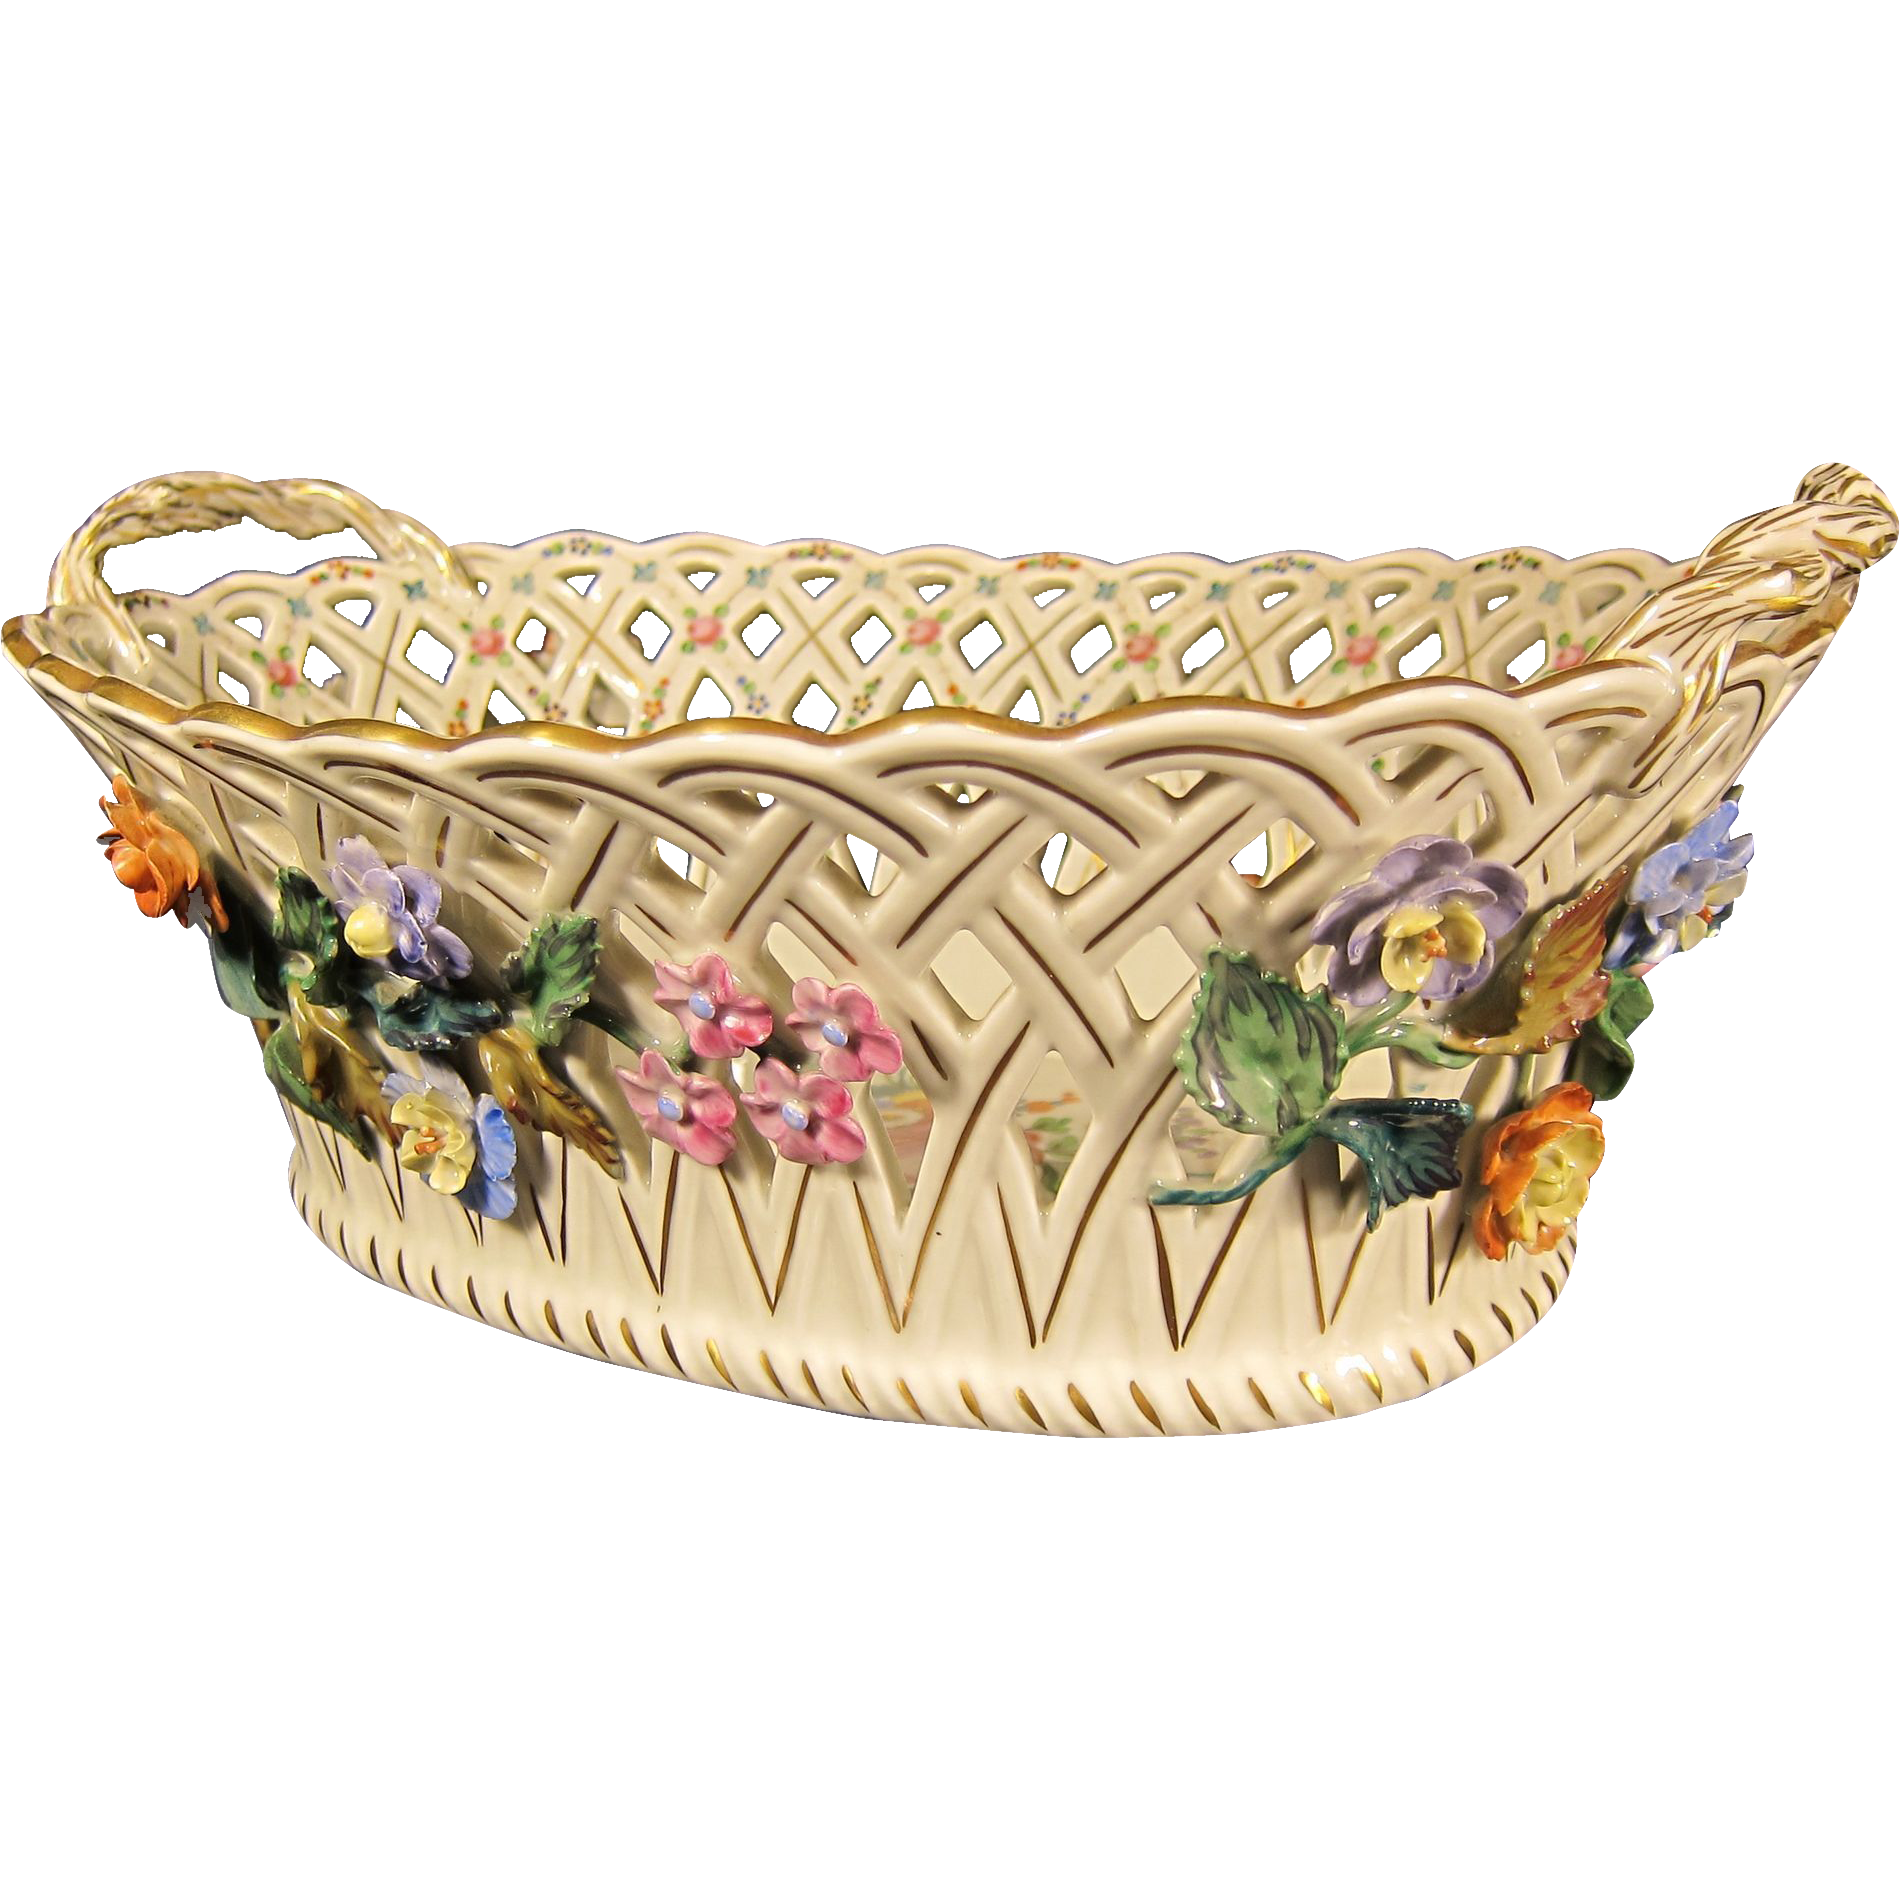 Antique German Porcelain Centerpiece Basket by Dresden Germany 1900s